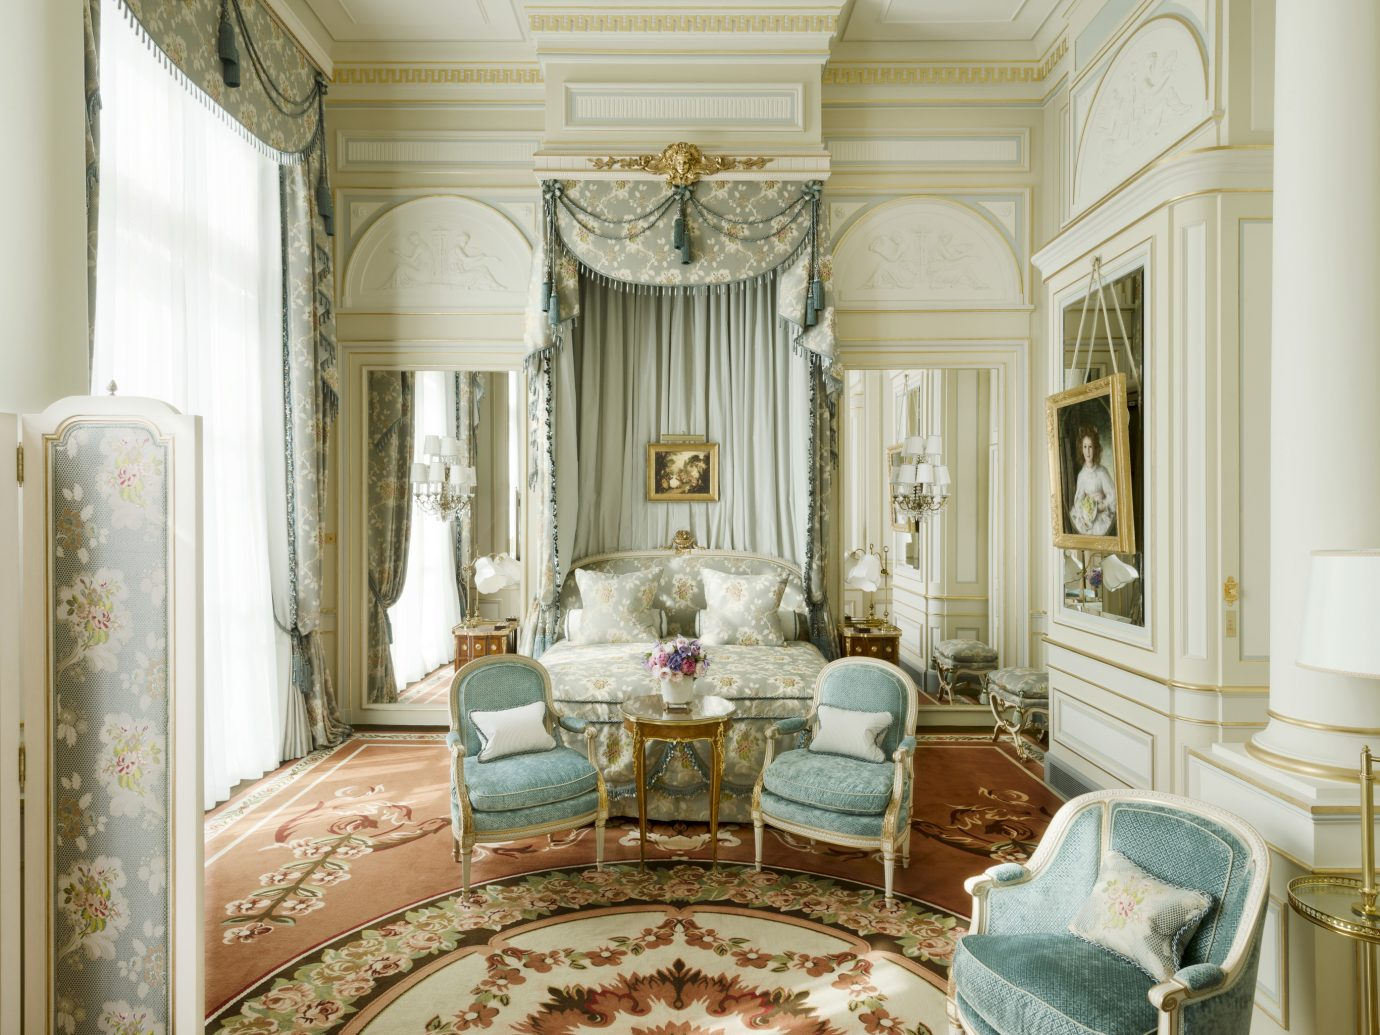 BEdroom at the ritz paris